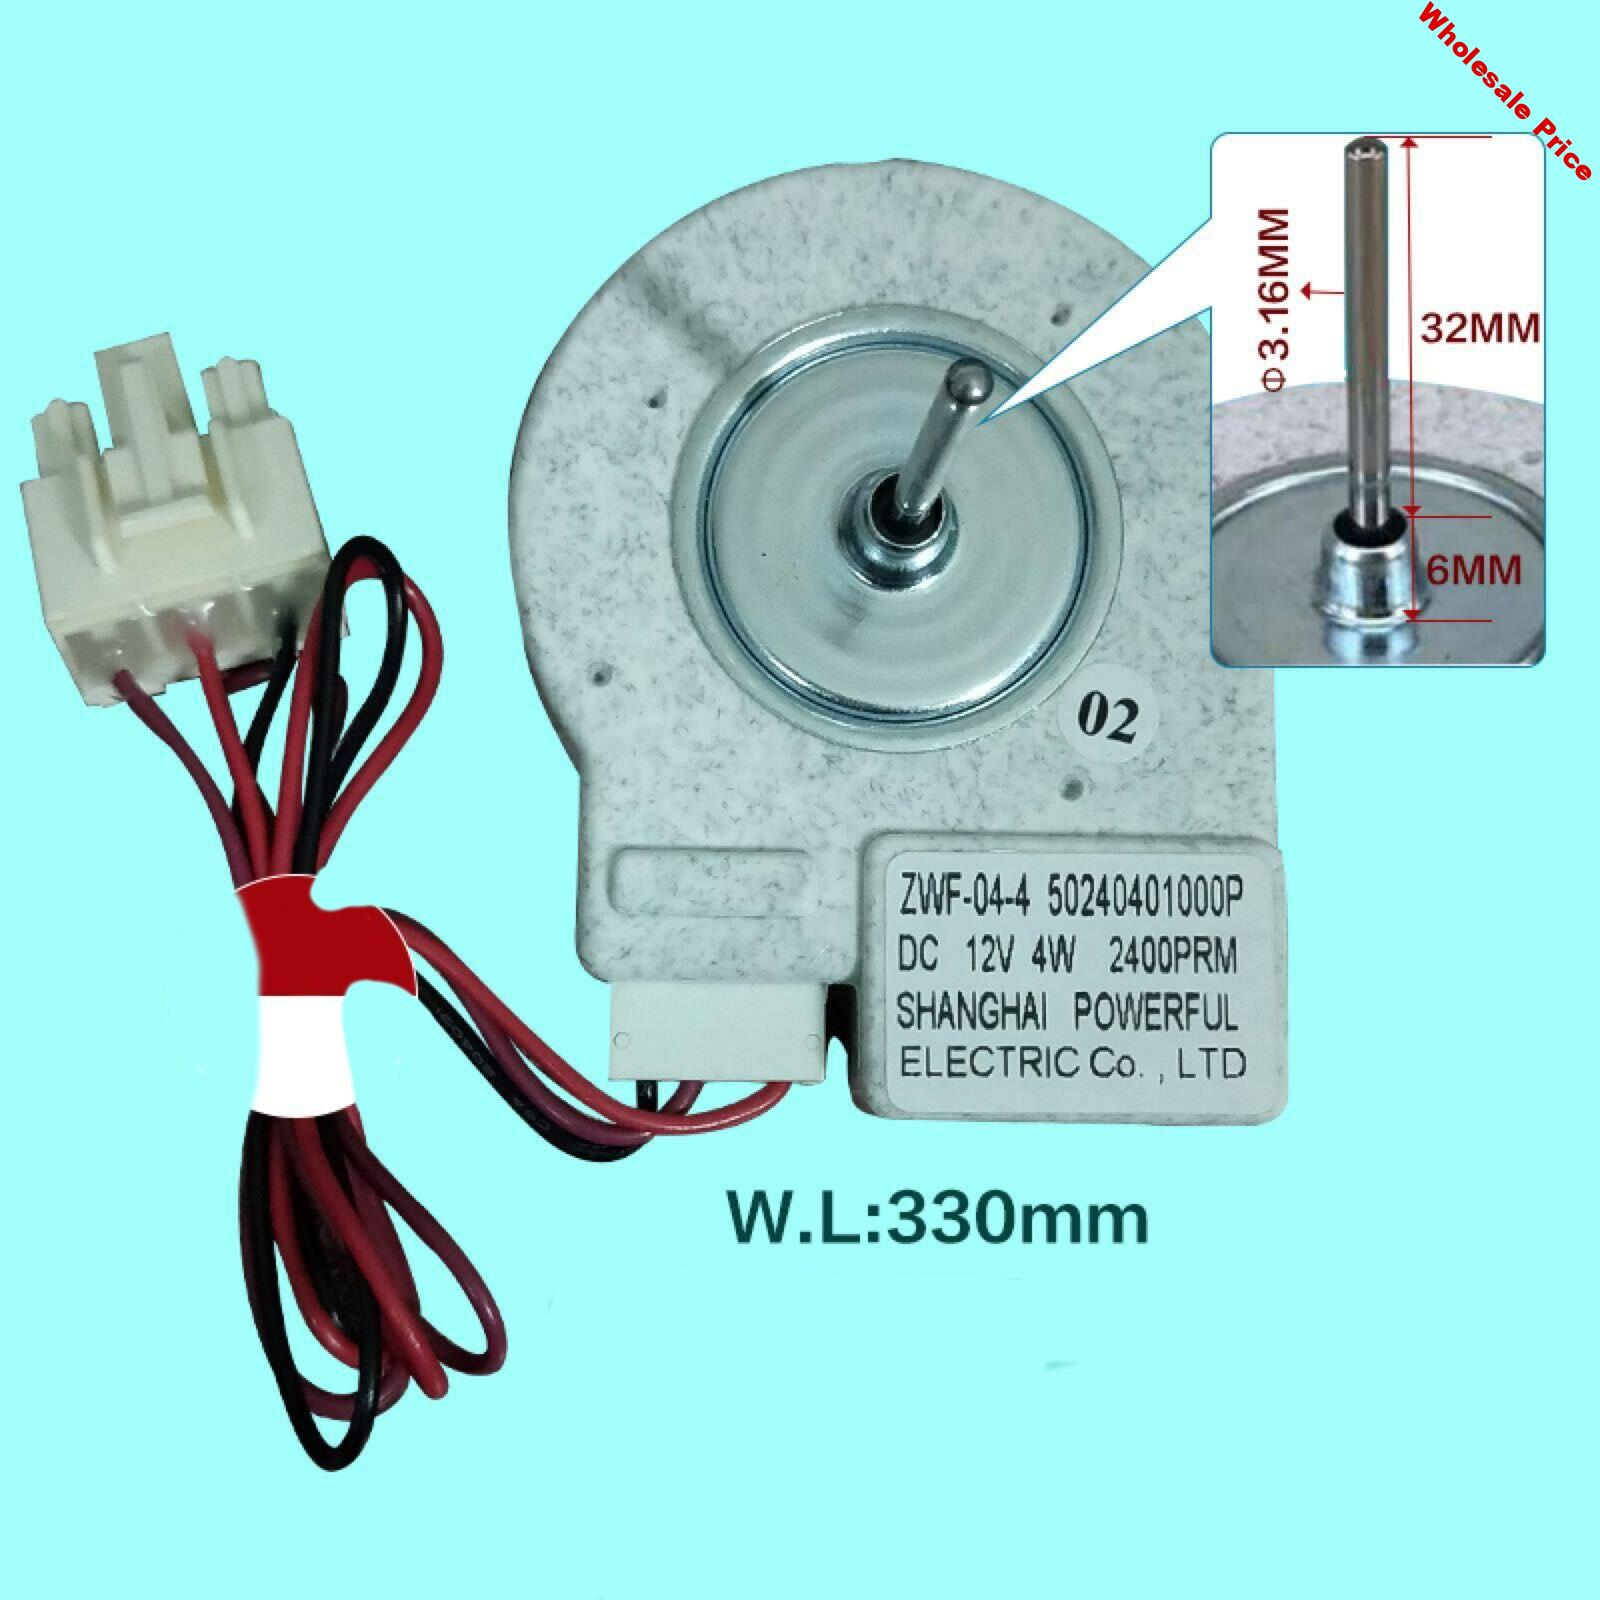 Replacement Universal Fan Motor for Midea Refrigerator BCD-330WTV Freezing Fan Motor ZWF-02-4 Type Refrigerator Accessories